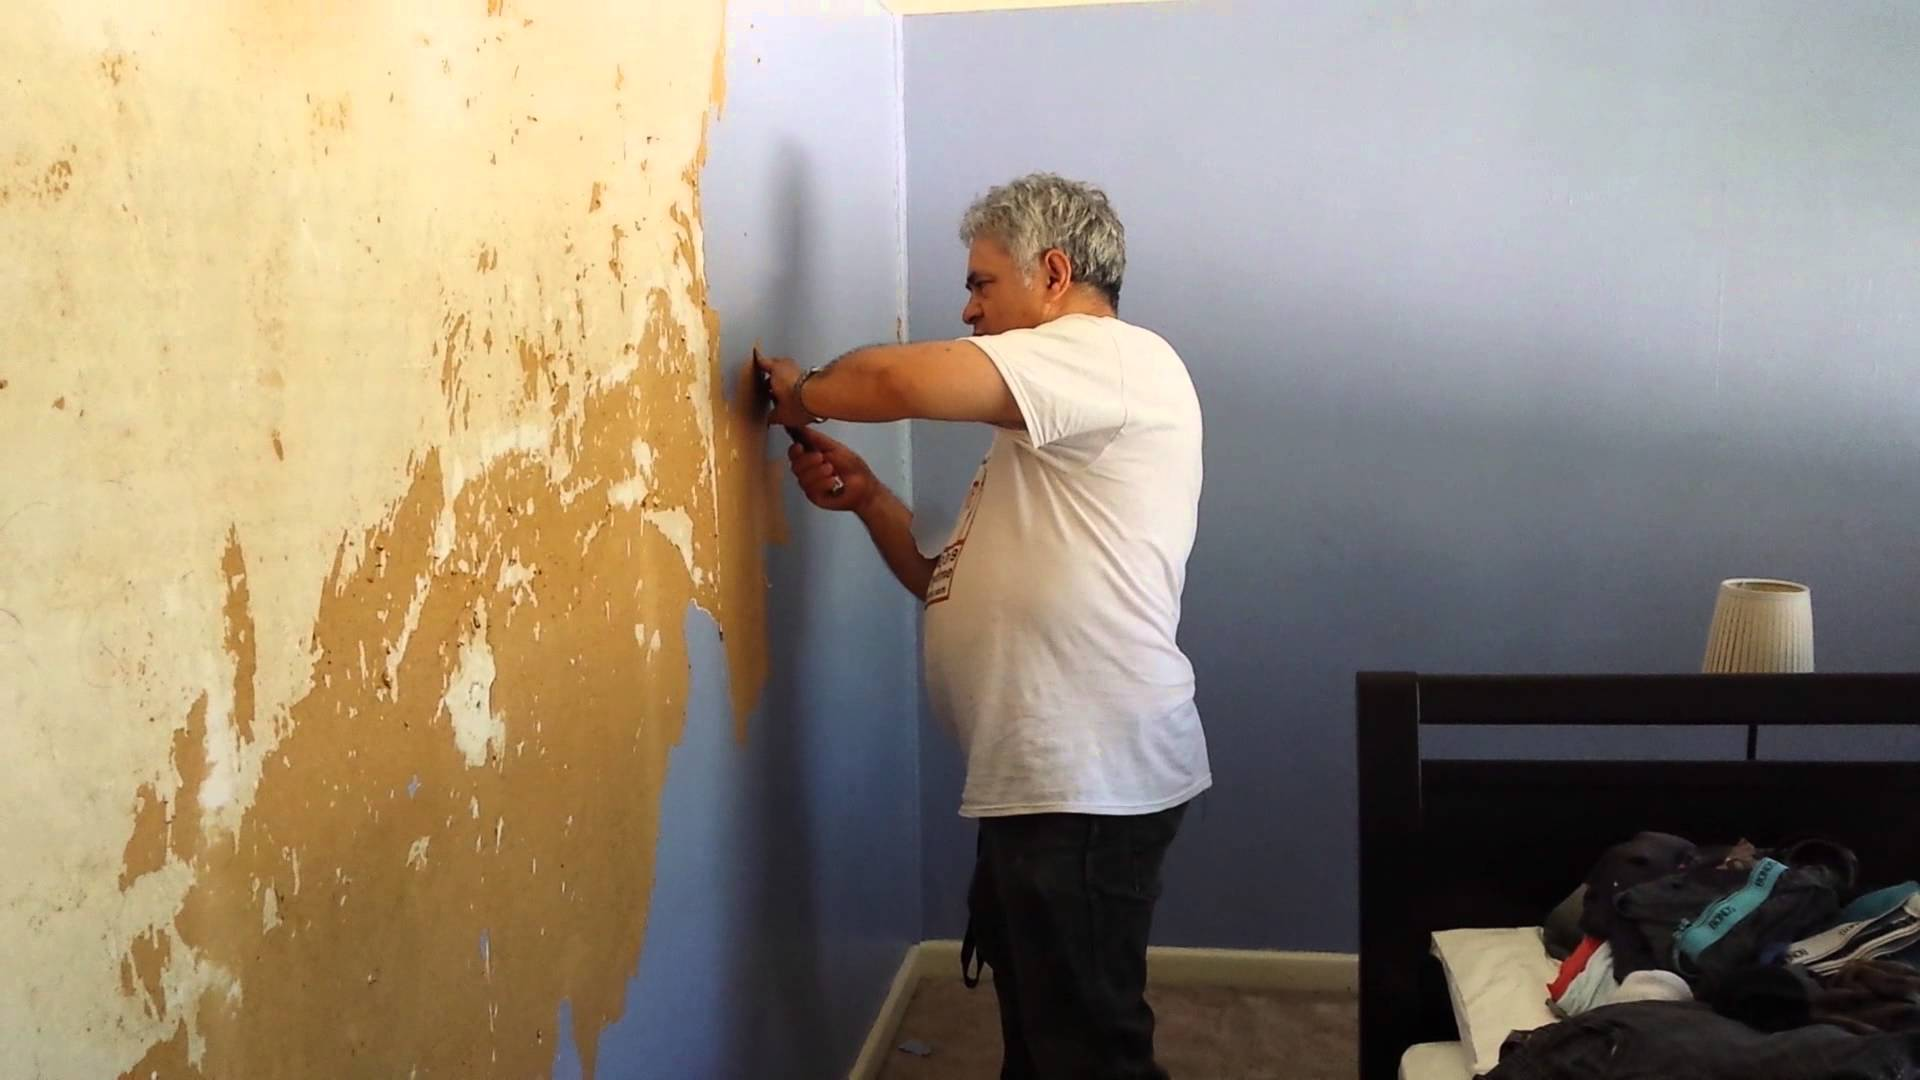 Free Download To Remove Wallpaper That Was Painted Over